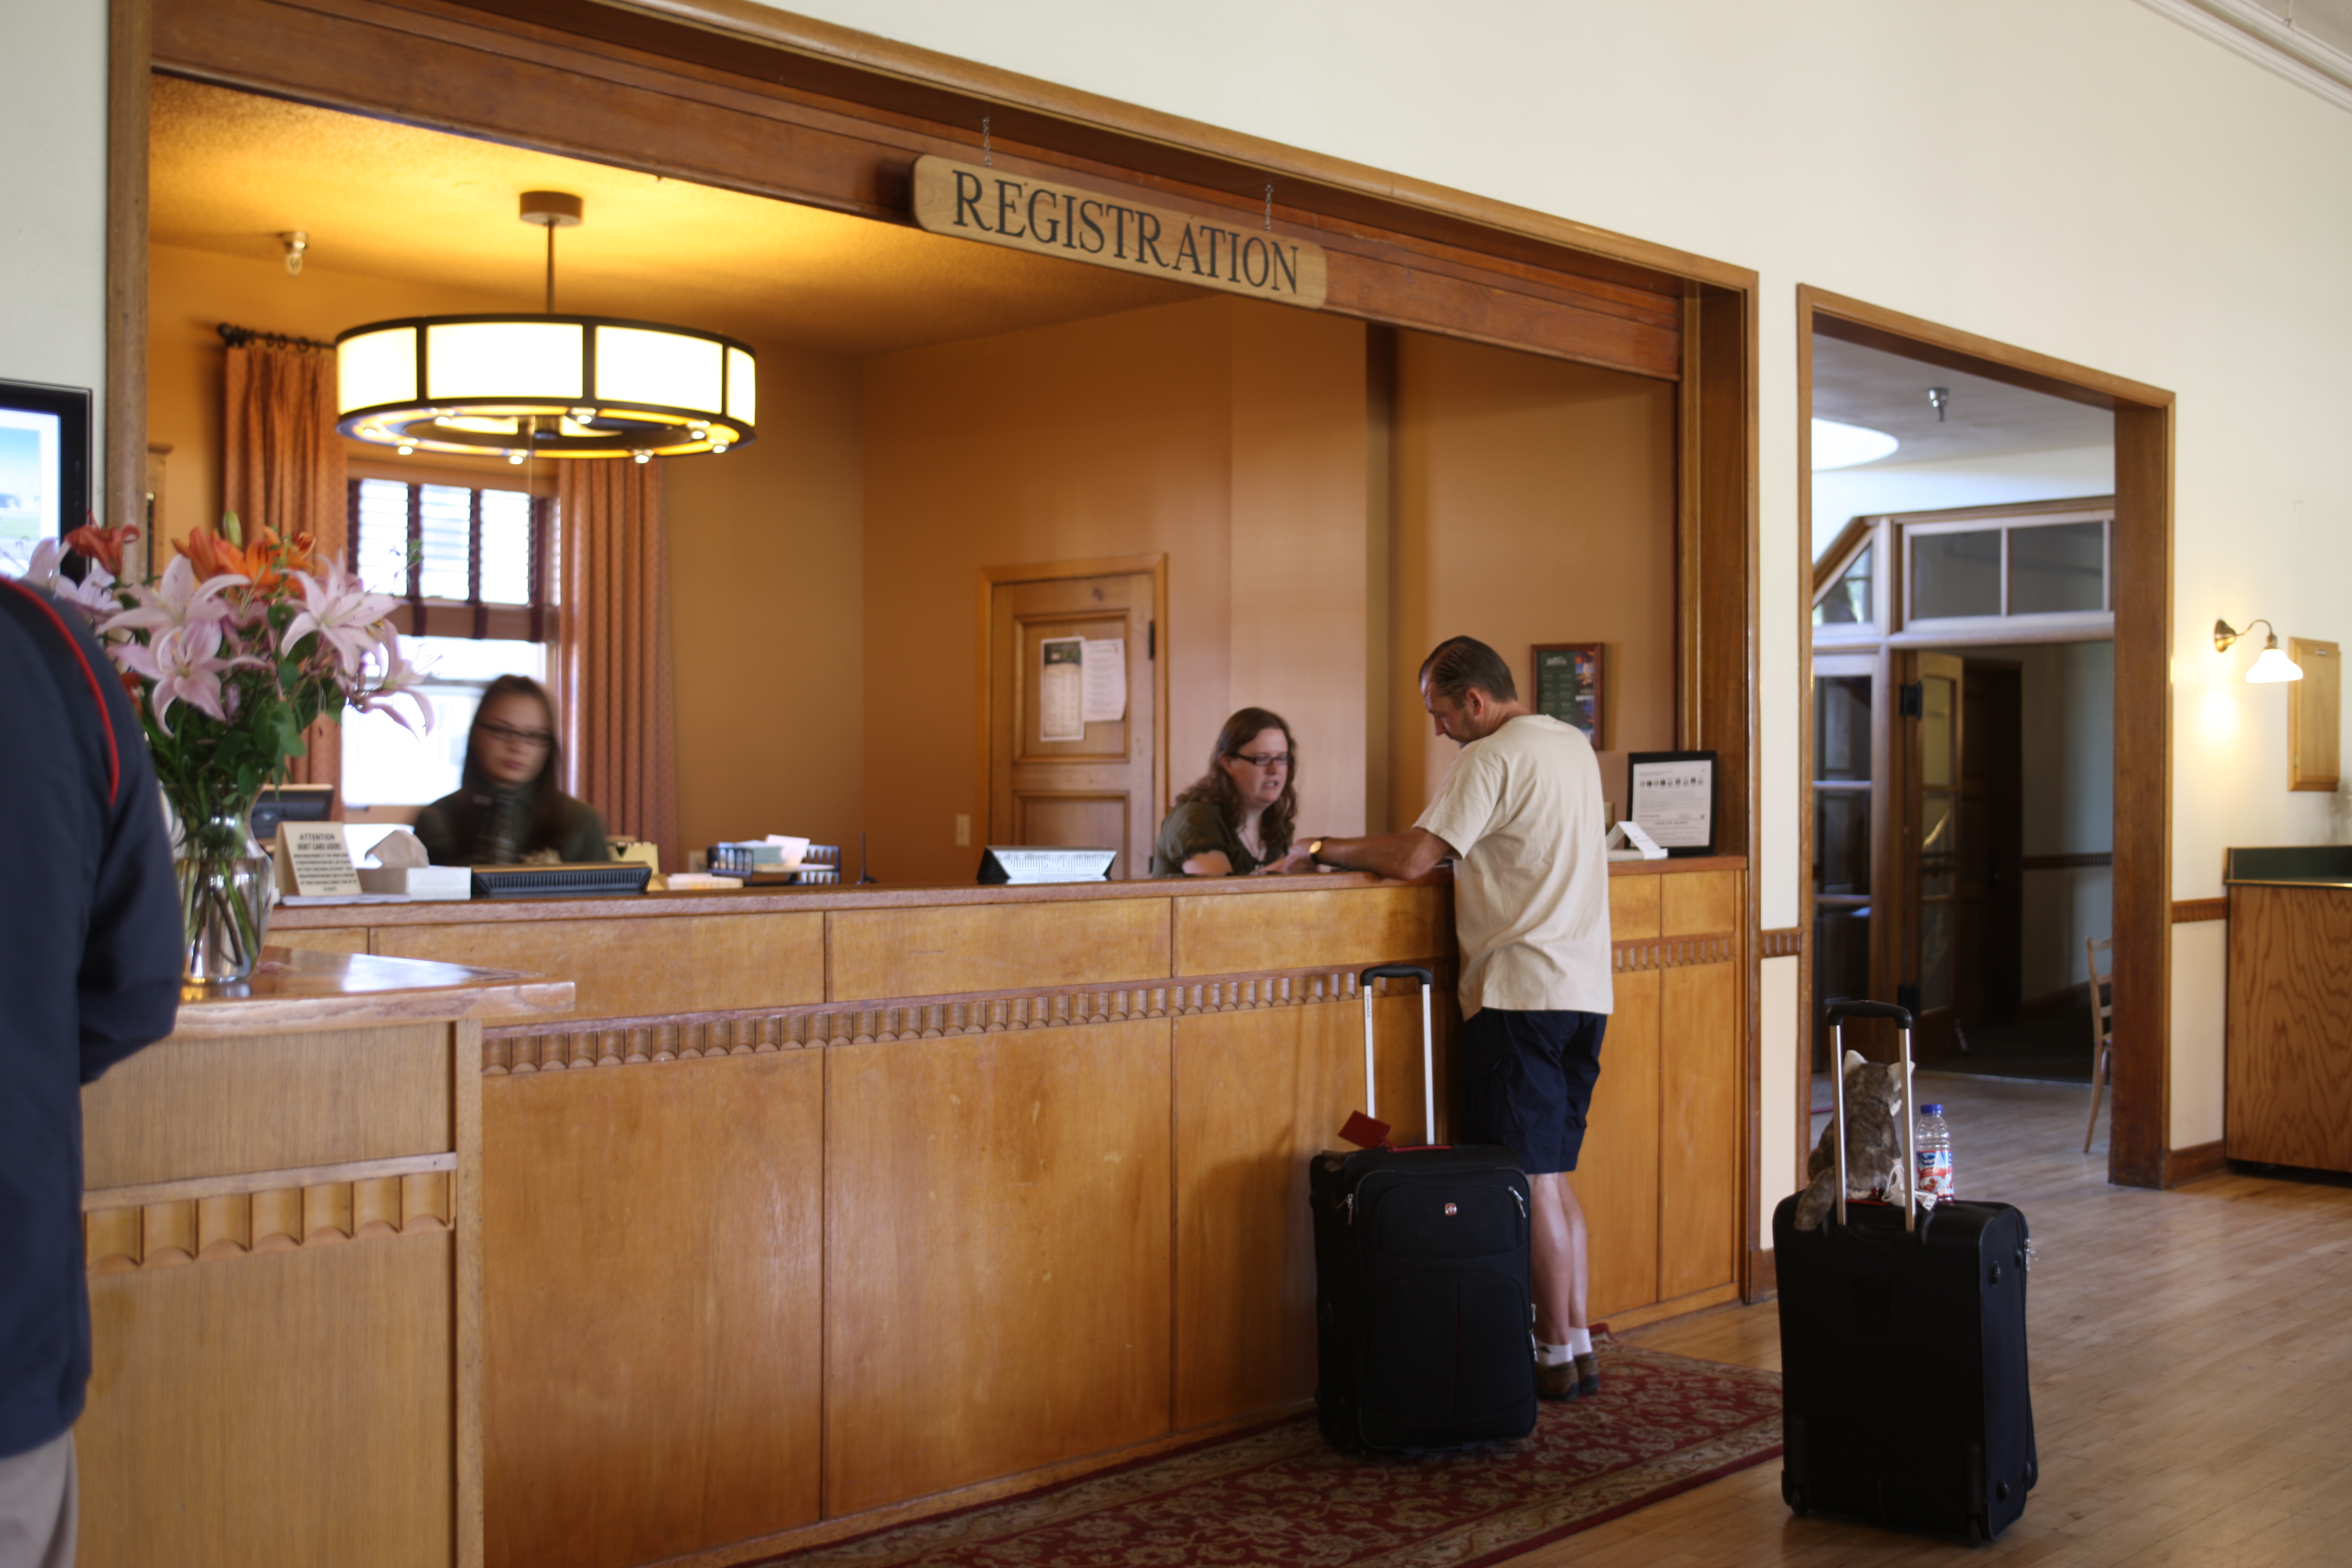 File mammoth hot springs hotel registration desk for Design hotels wiki